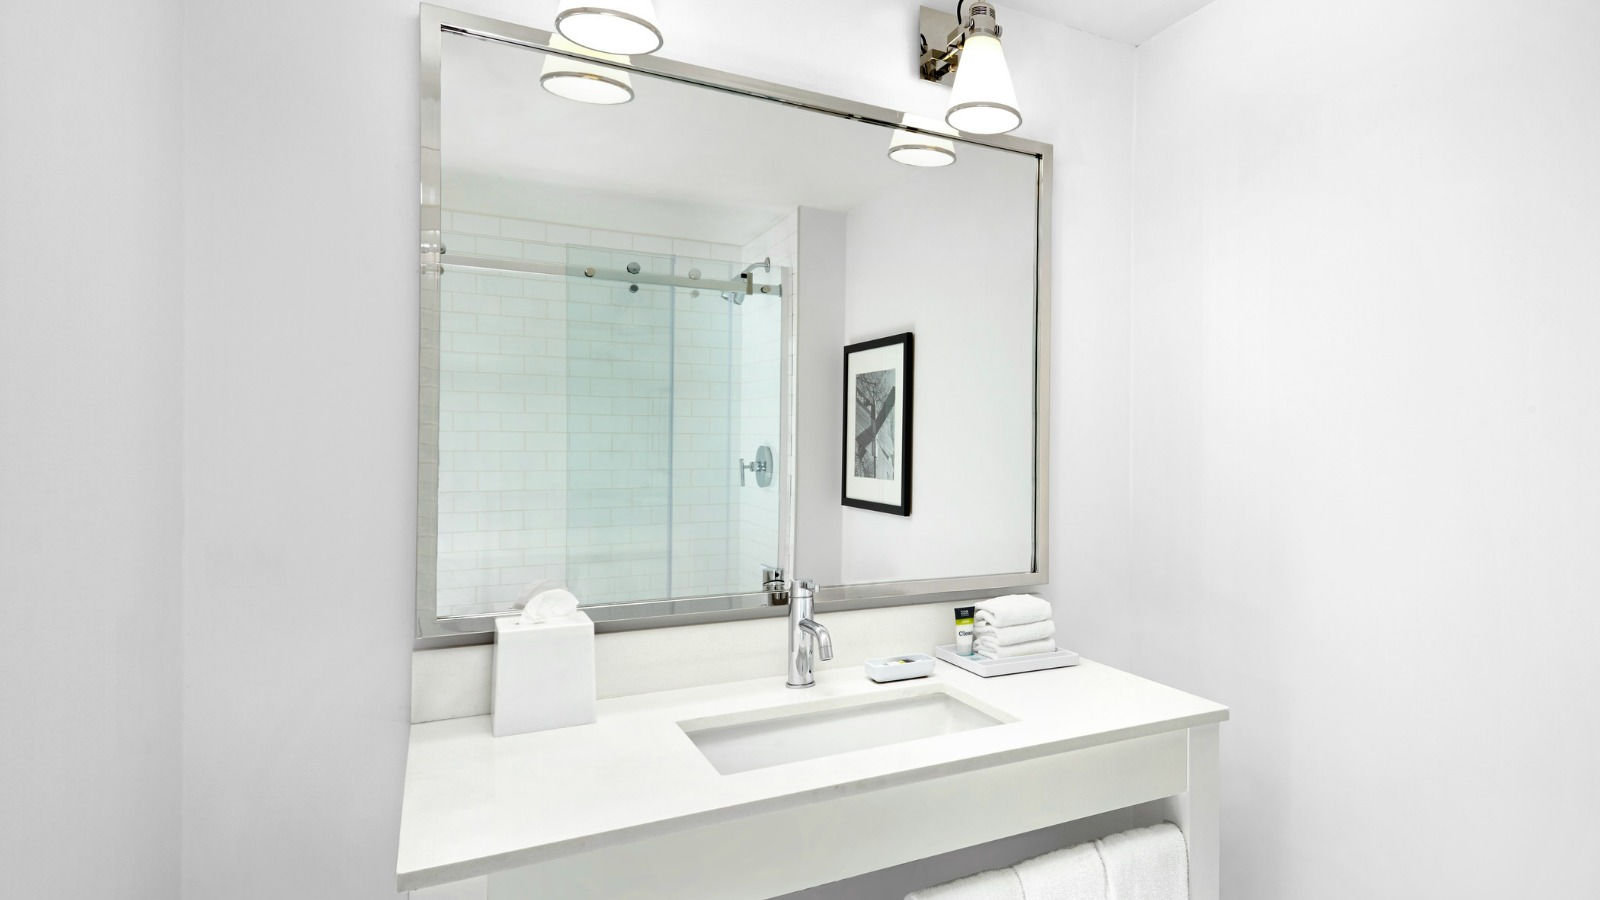 Vancouver airport accommodations four points by sheraton for Bathrooms r us vancouver